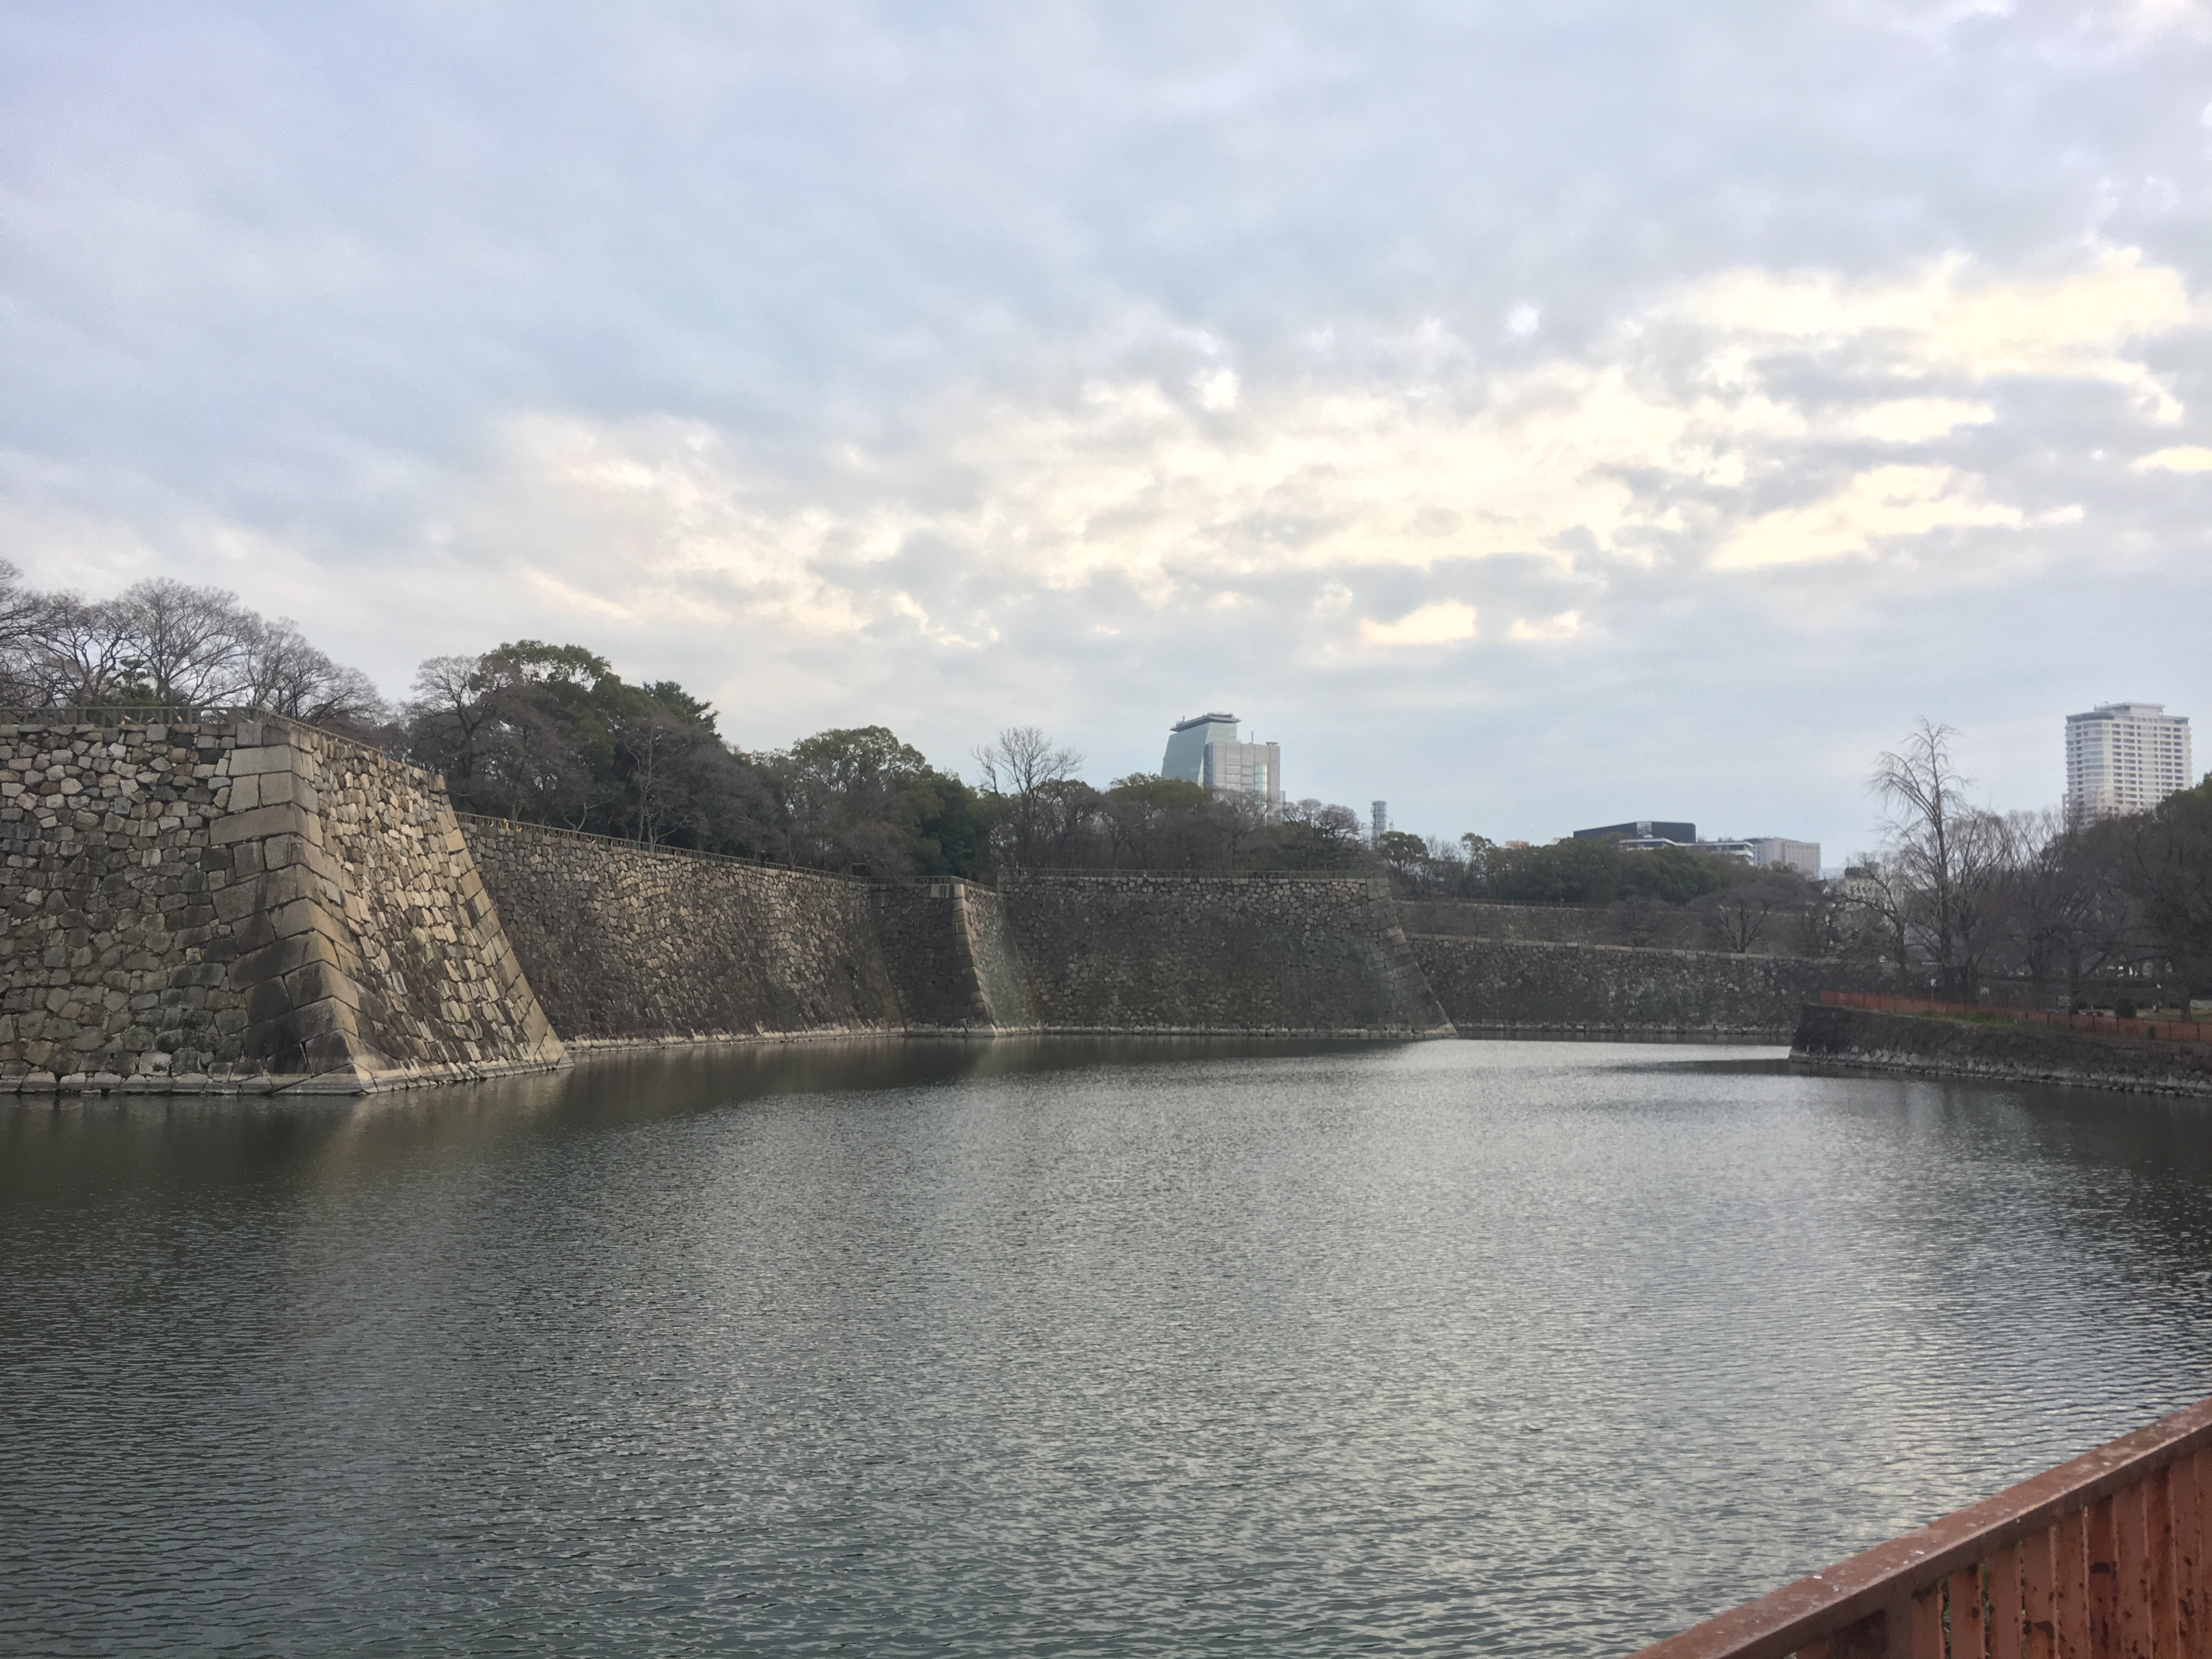 large tokugawa period stone castle walls and moat on a cloudy day